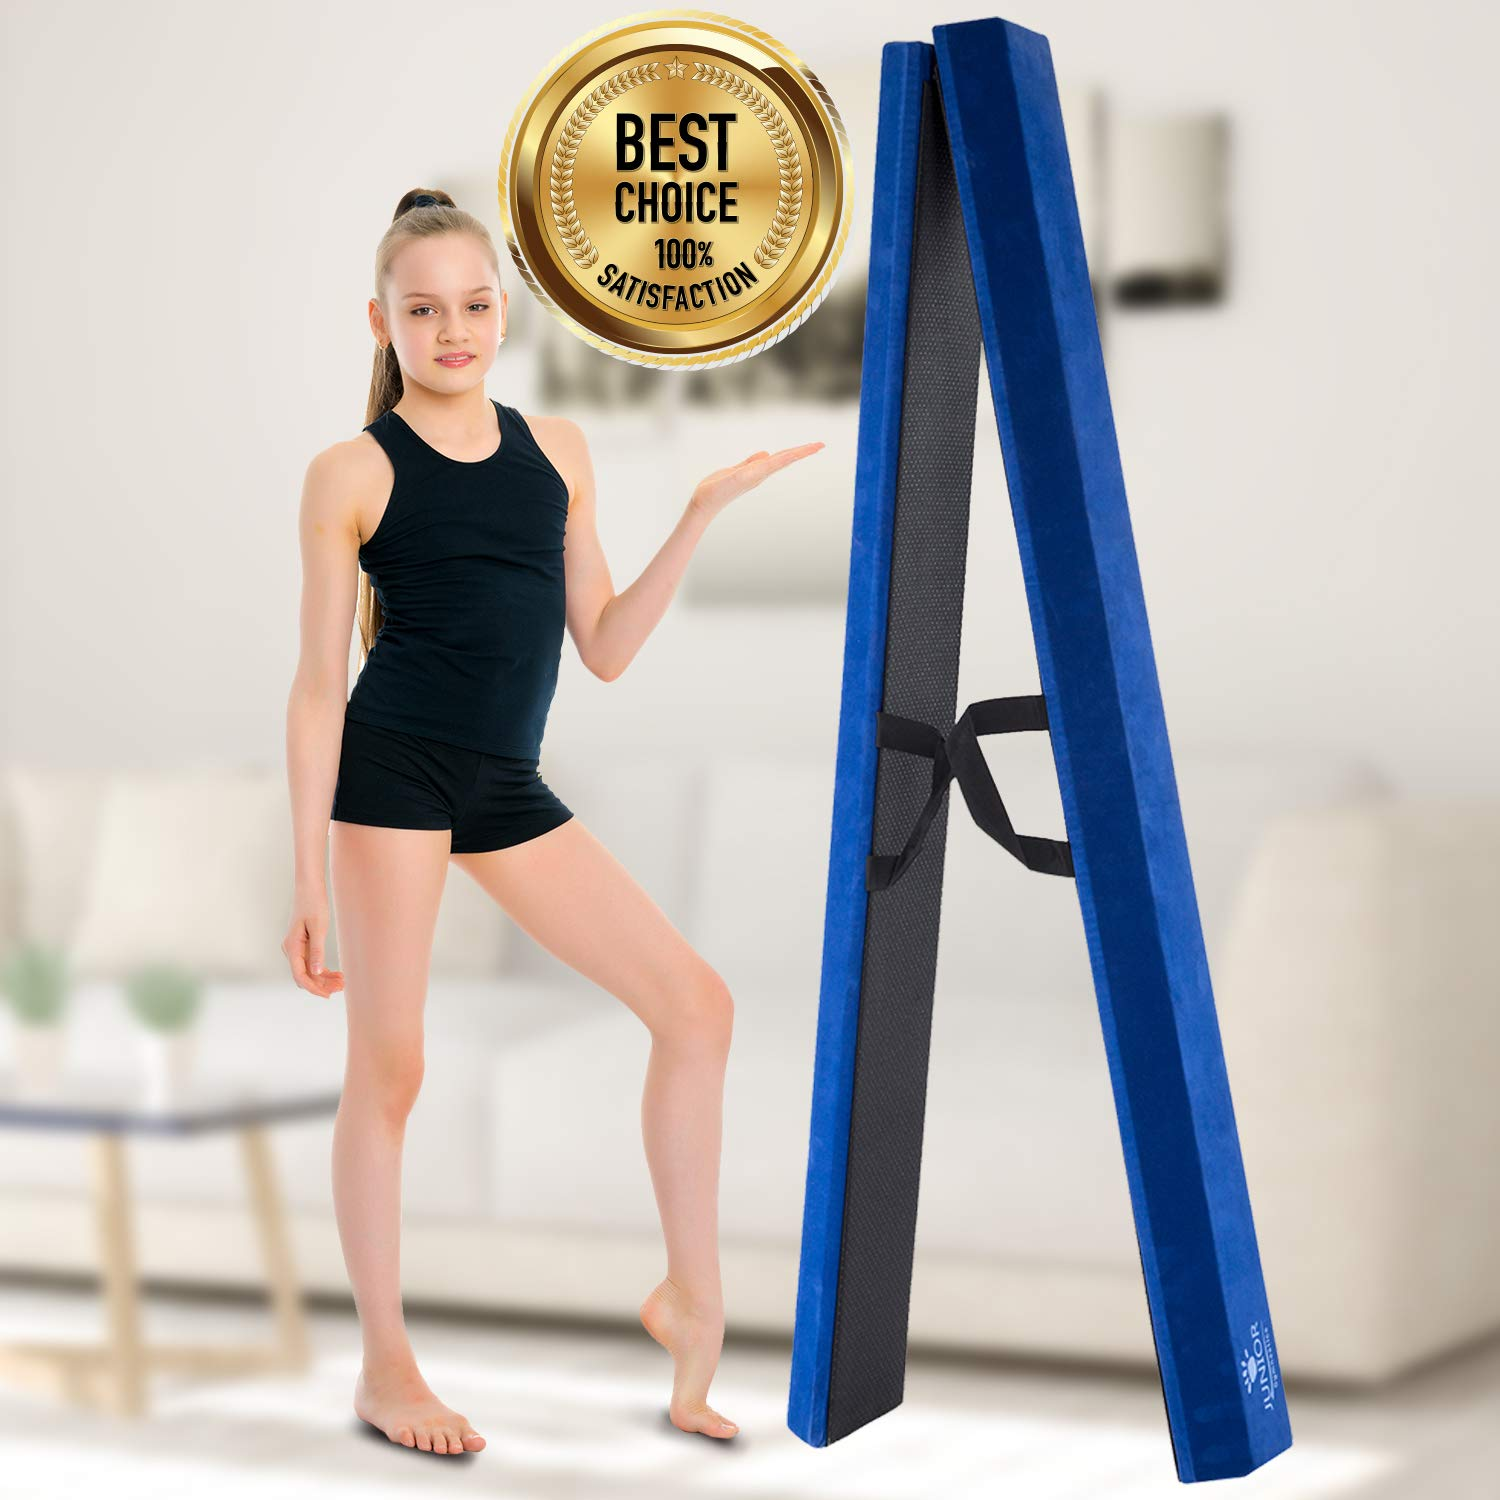 Amazon.com: Junior Gymnastics Balance Beam – 8 pies plegable ...